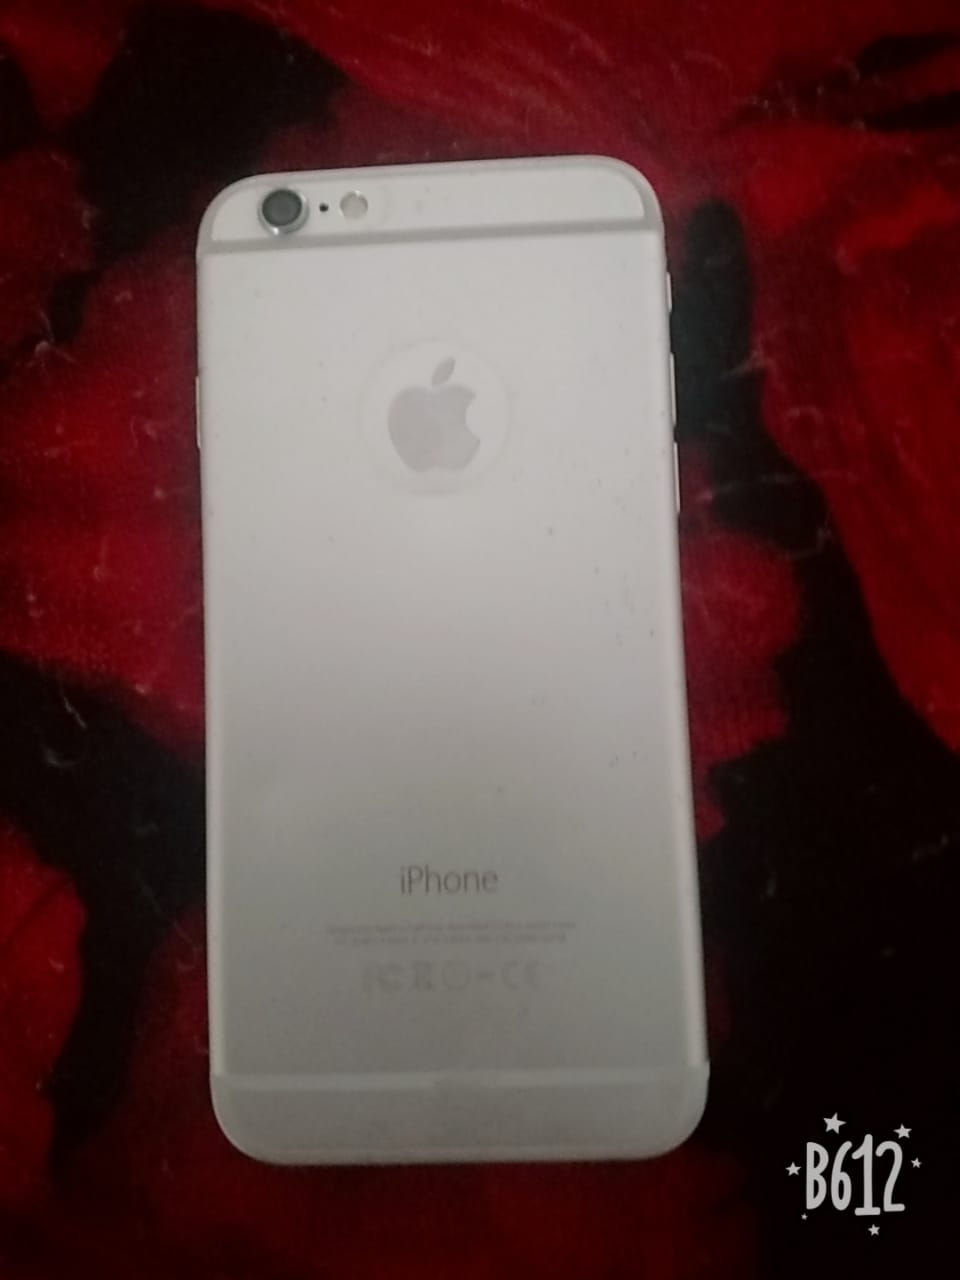 iPhone 64 gb in good condition golden color - photo 2